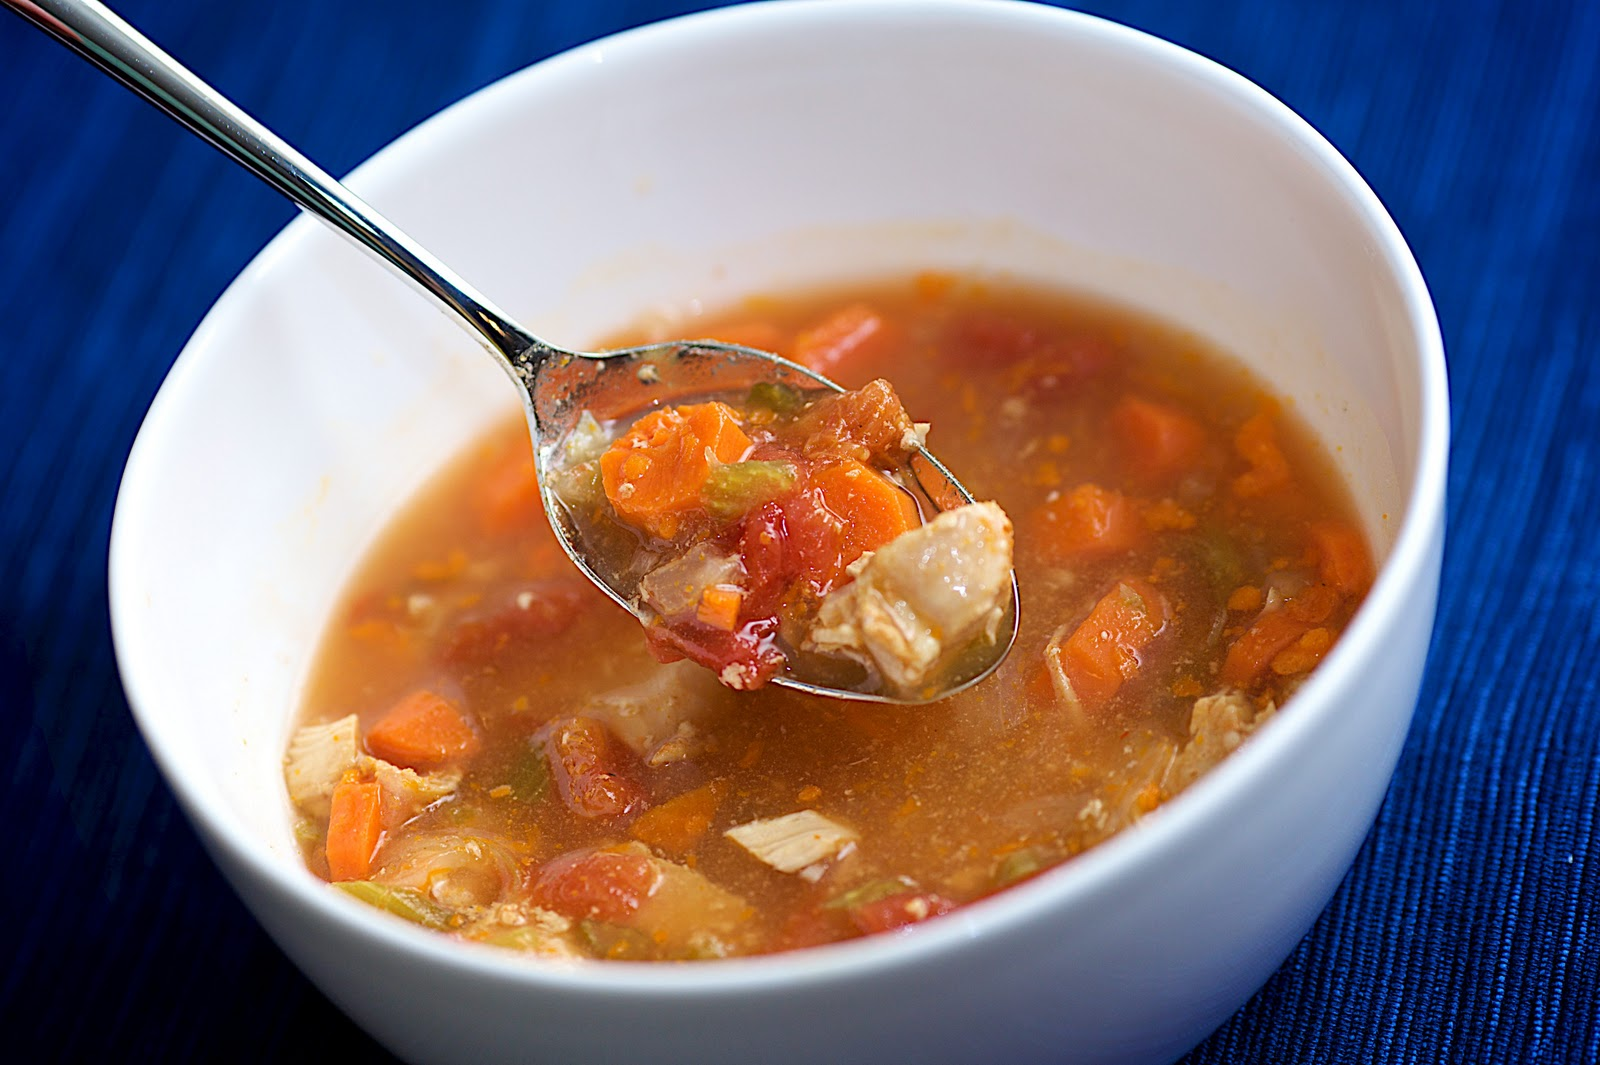 Gratefully Grain-Free: Chicken Tortilla Soup